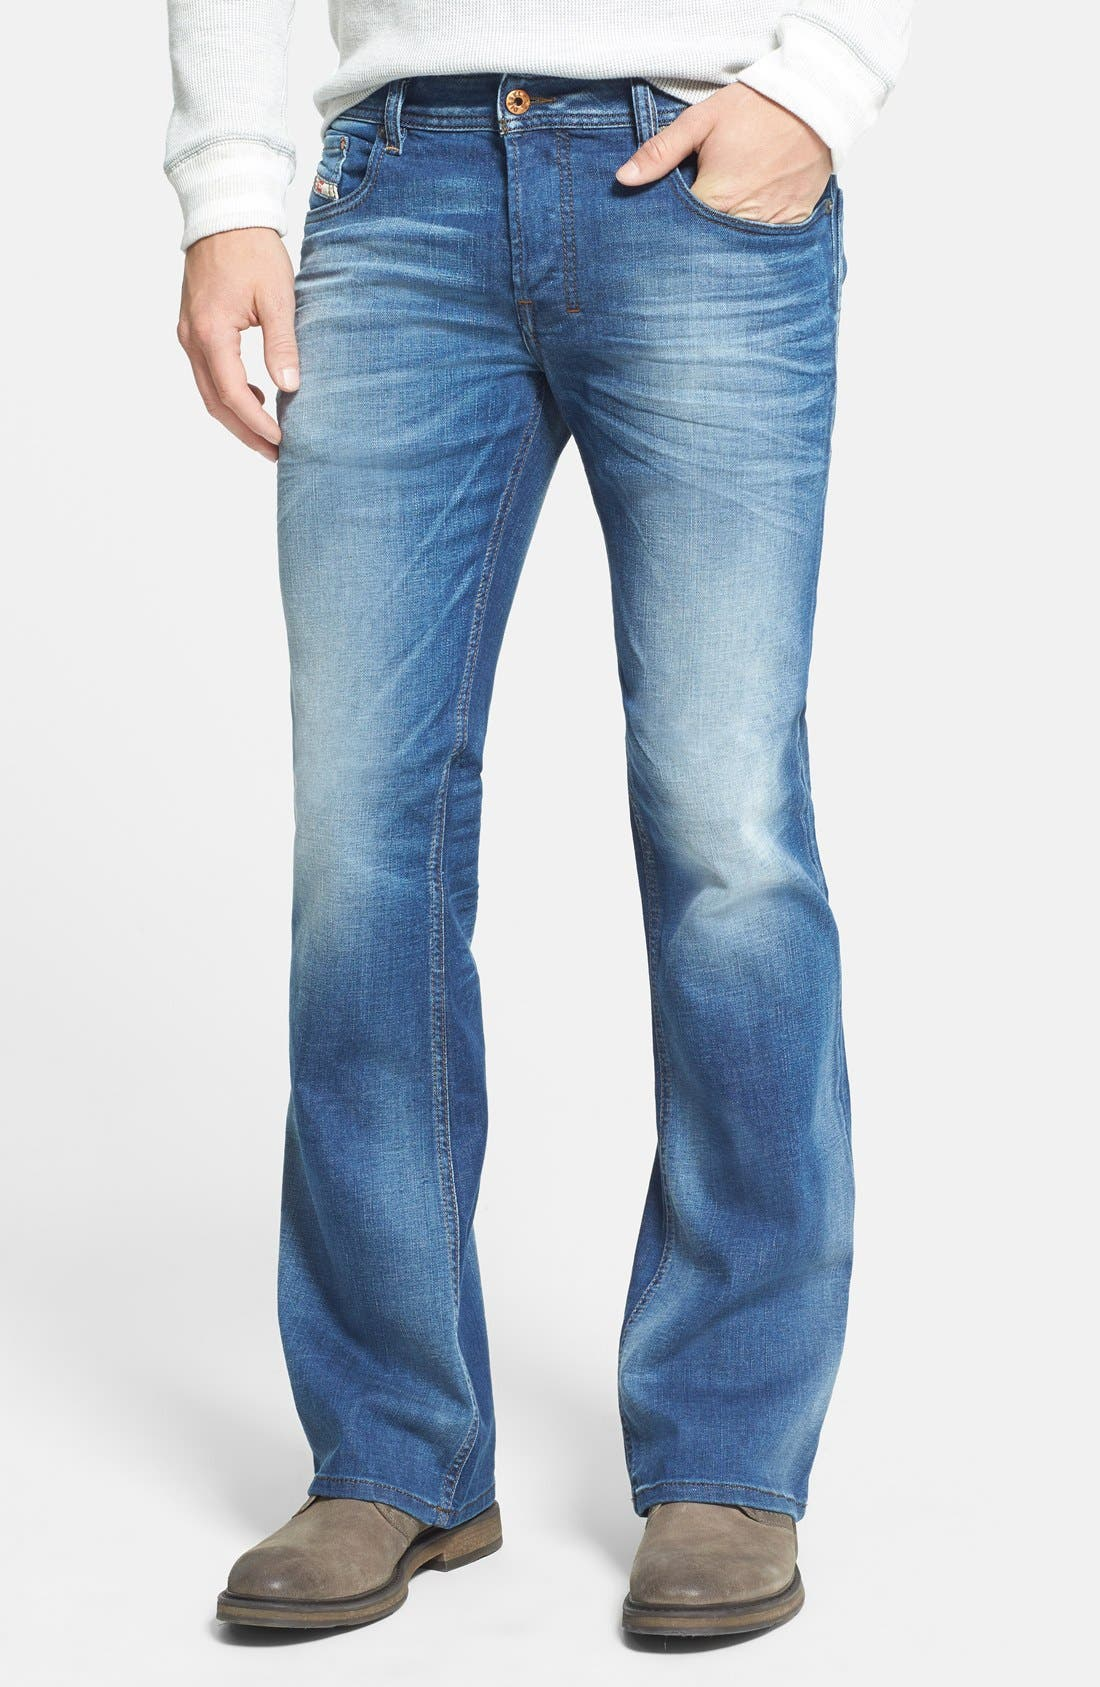 Zathan Bootcut Jeans,                         Main,                         color, 499